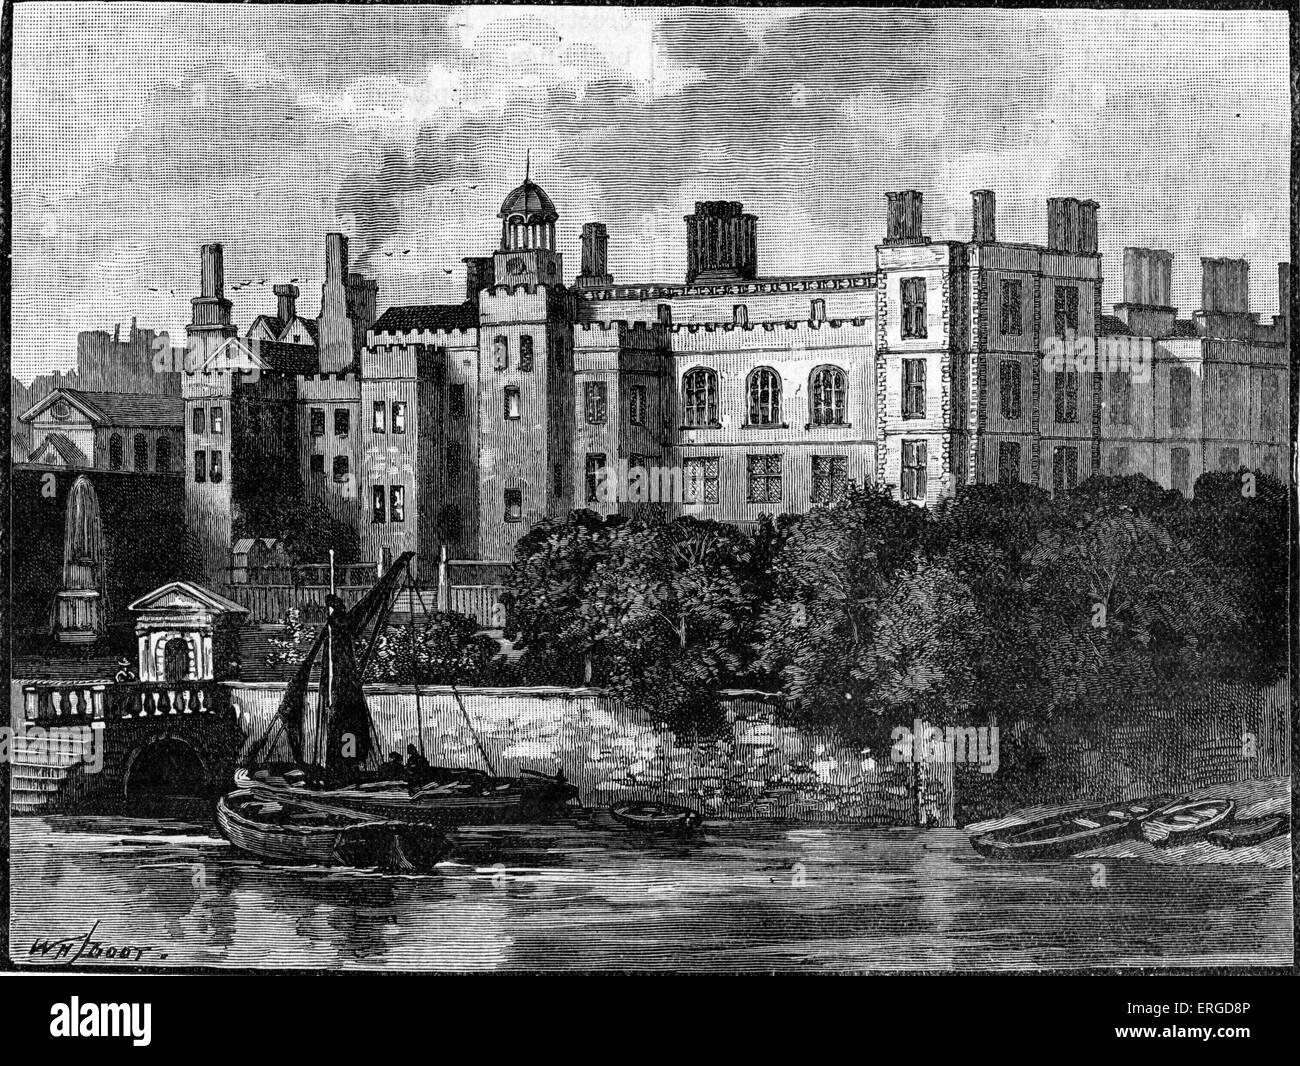 Old Somerset House, London, c.1540s. Built by Edward Seymour, 1st Duke of Somerset. A man of many enemies, prior - Stock Image